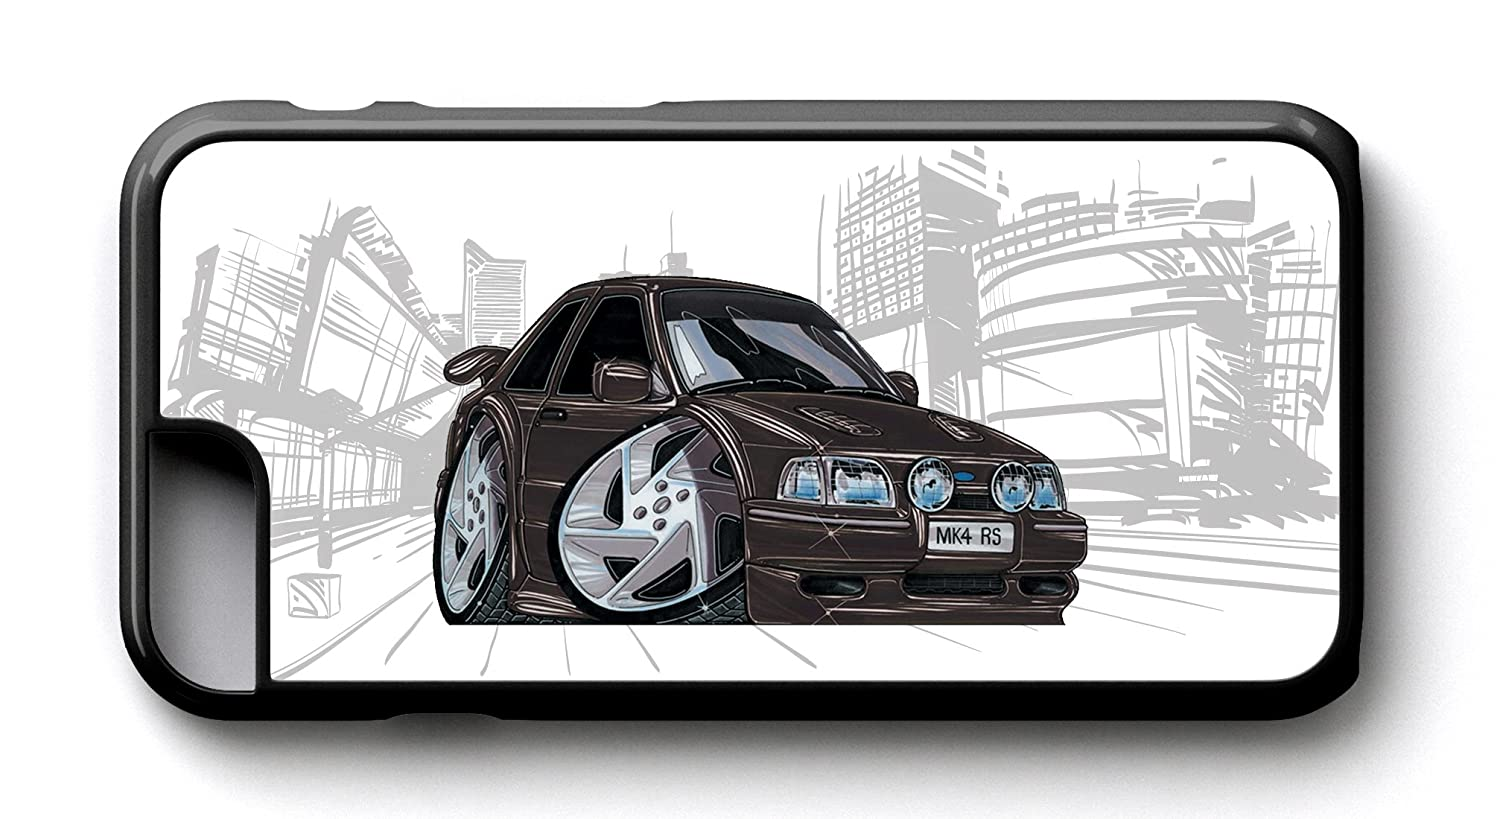 Carcasa de KOOLART unacaricatura de Ford Escort RS Turbo negro - iphone 6/6S funda: Amazon.es: Electrónica